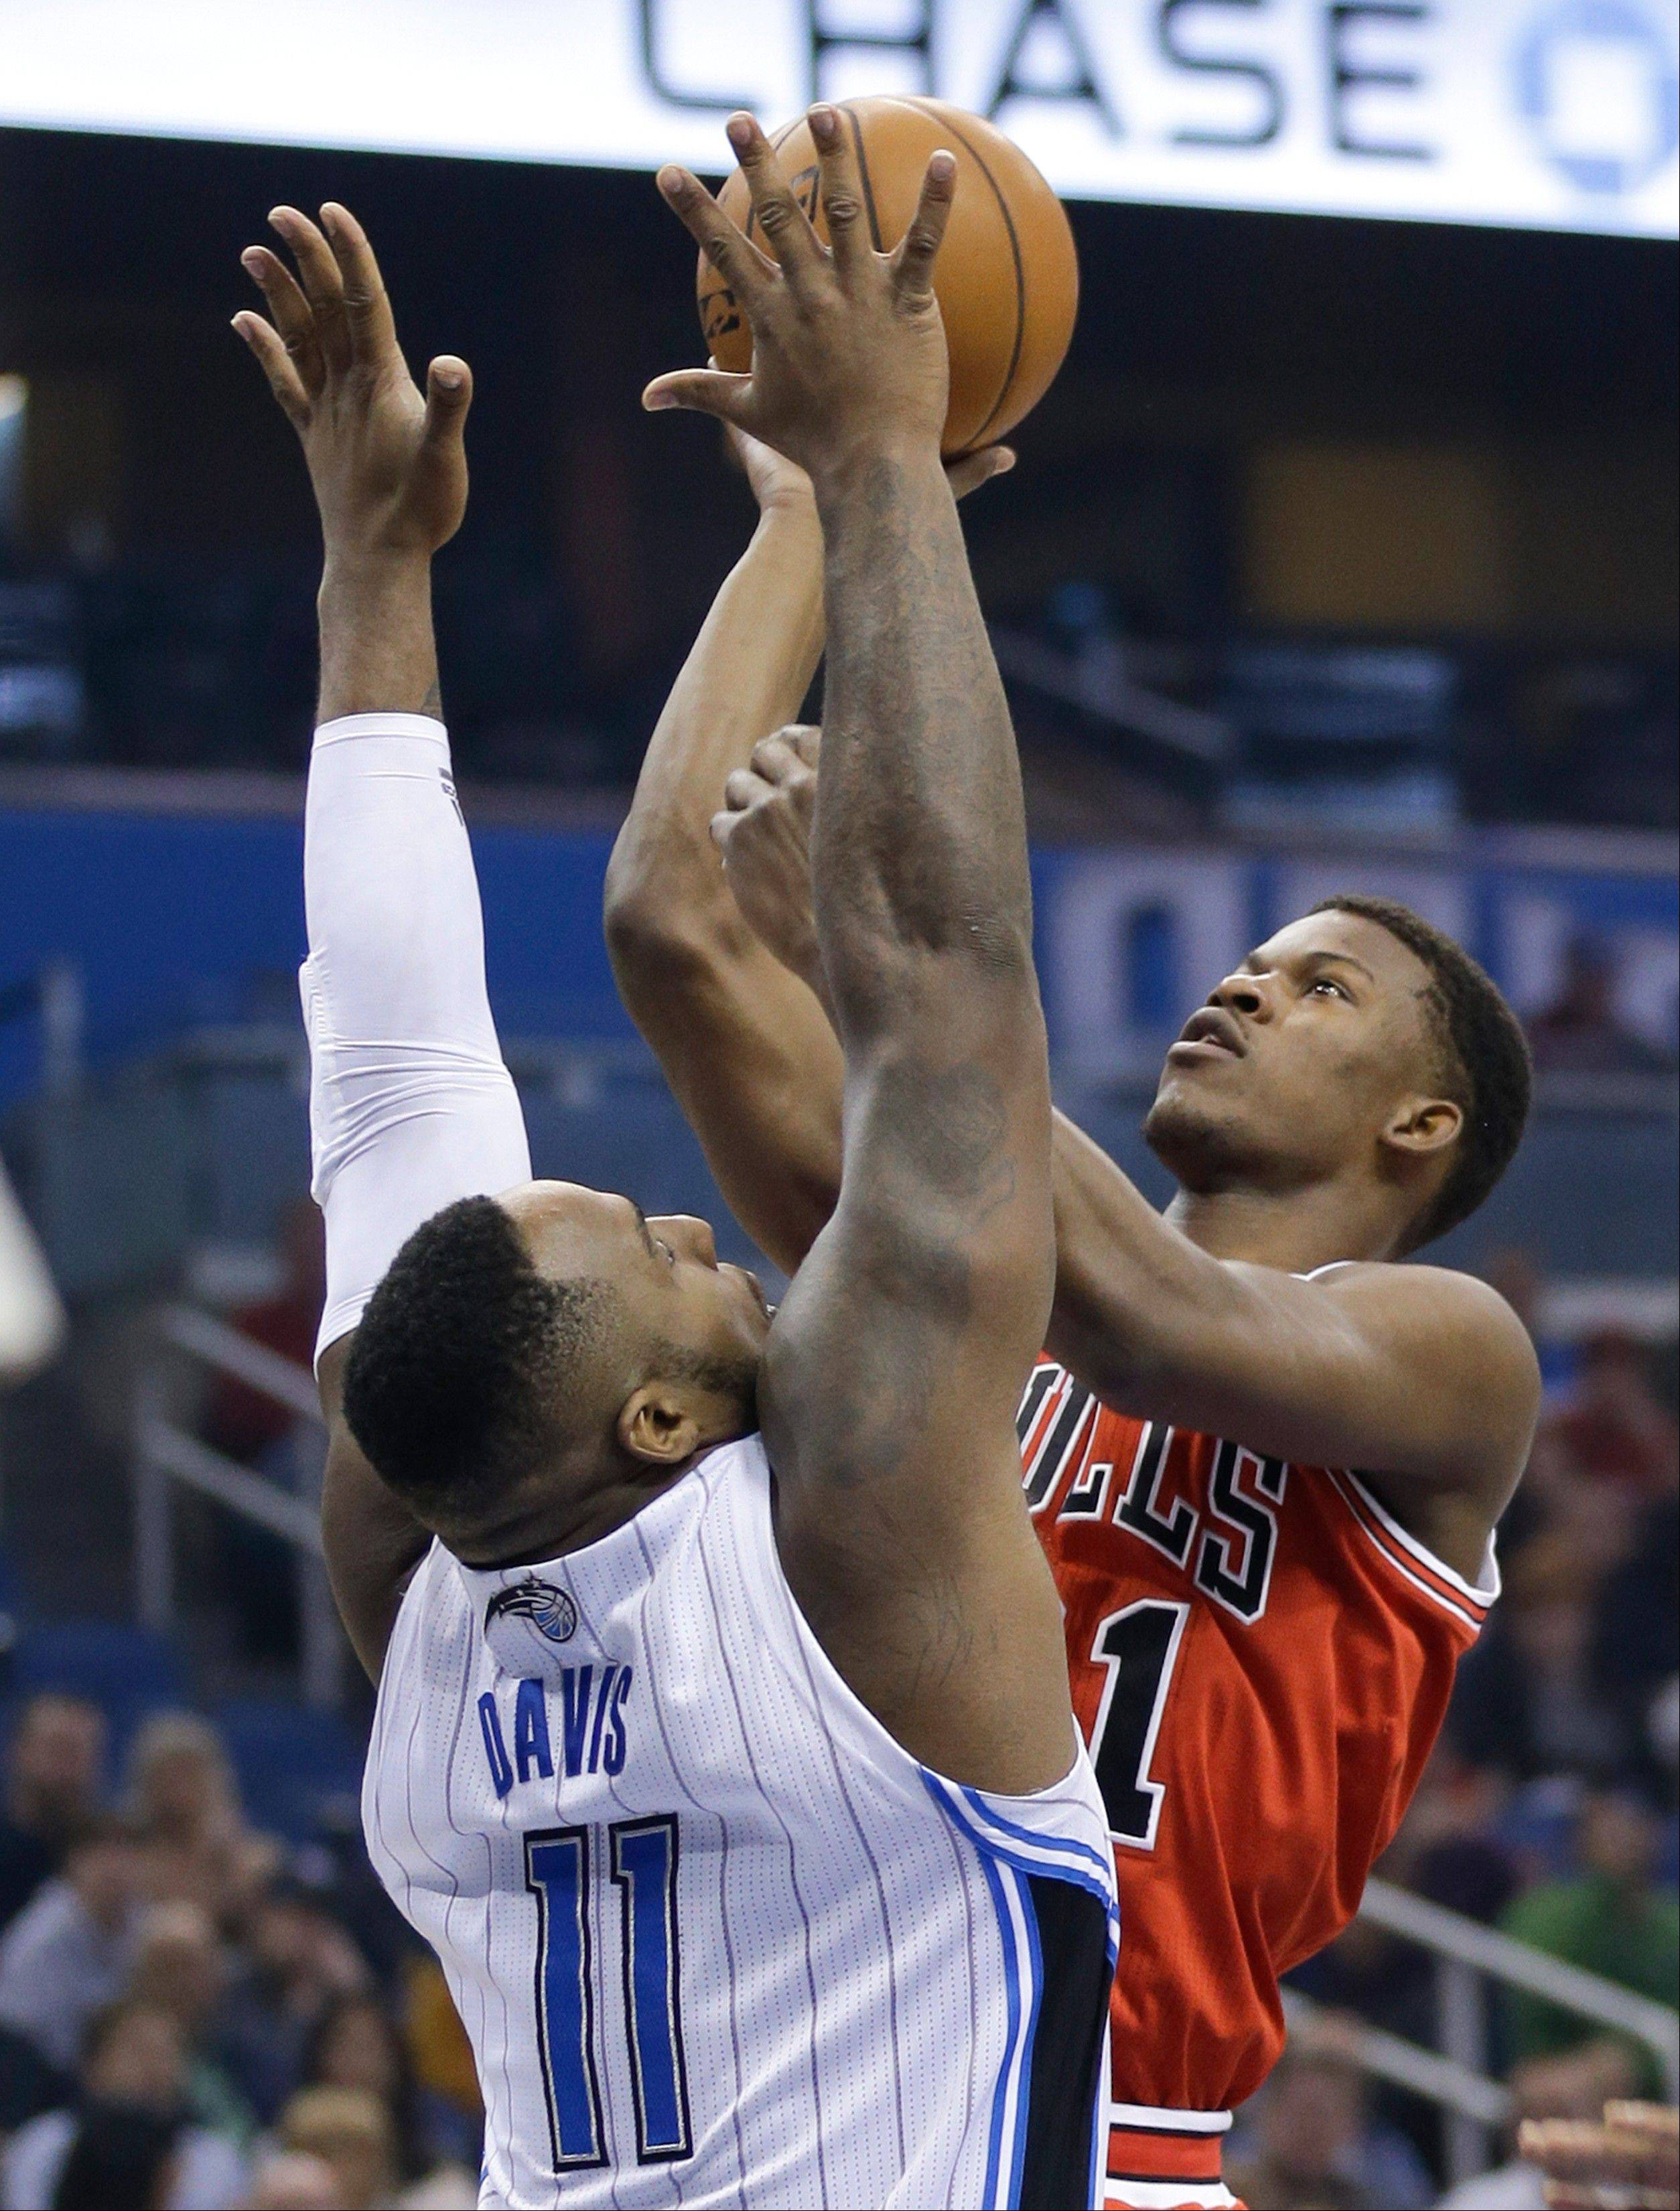 Jimmy Butler, taking a shot over Orlando's Glen Davis on Wednesday night, set at Bulls record by play 60 minutes, 20 seconds in the Bulls' triple-overtime victory over the Magic.